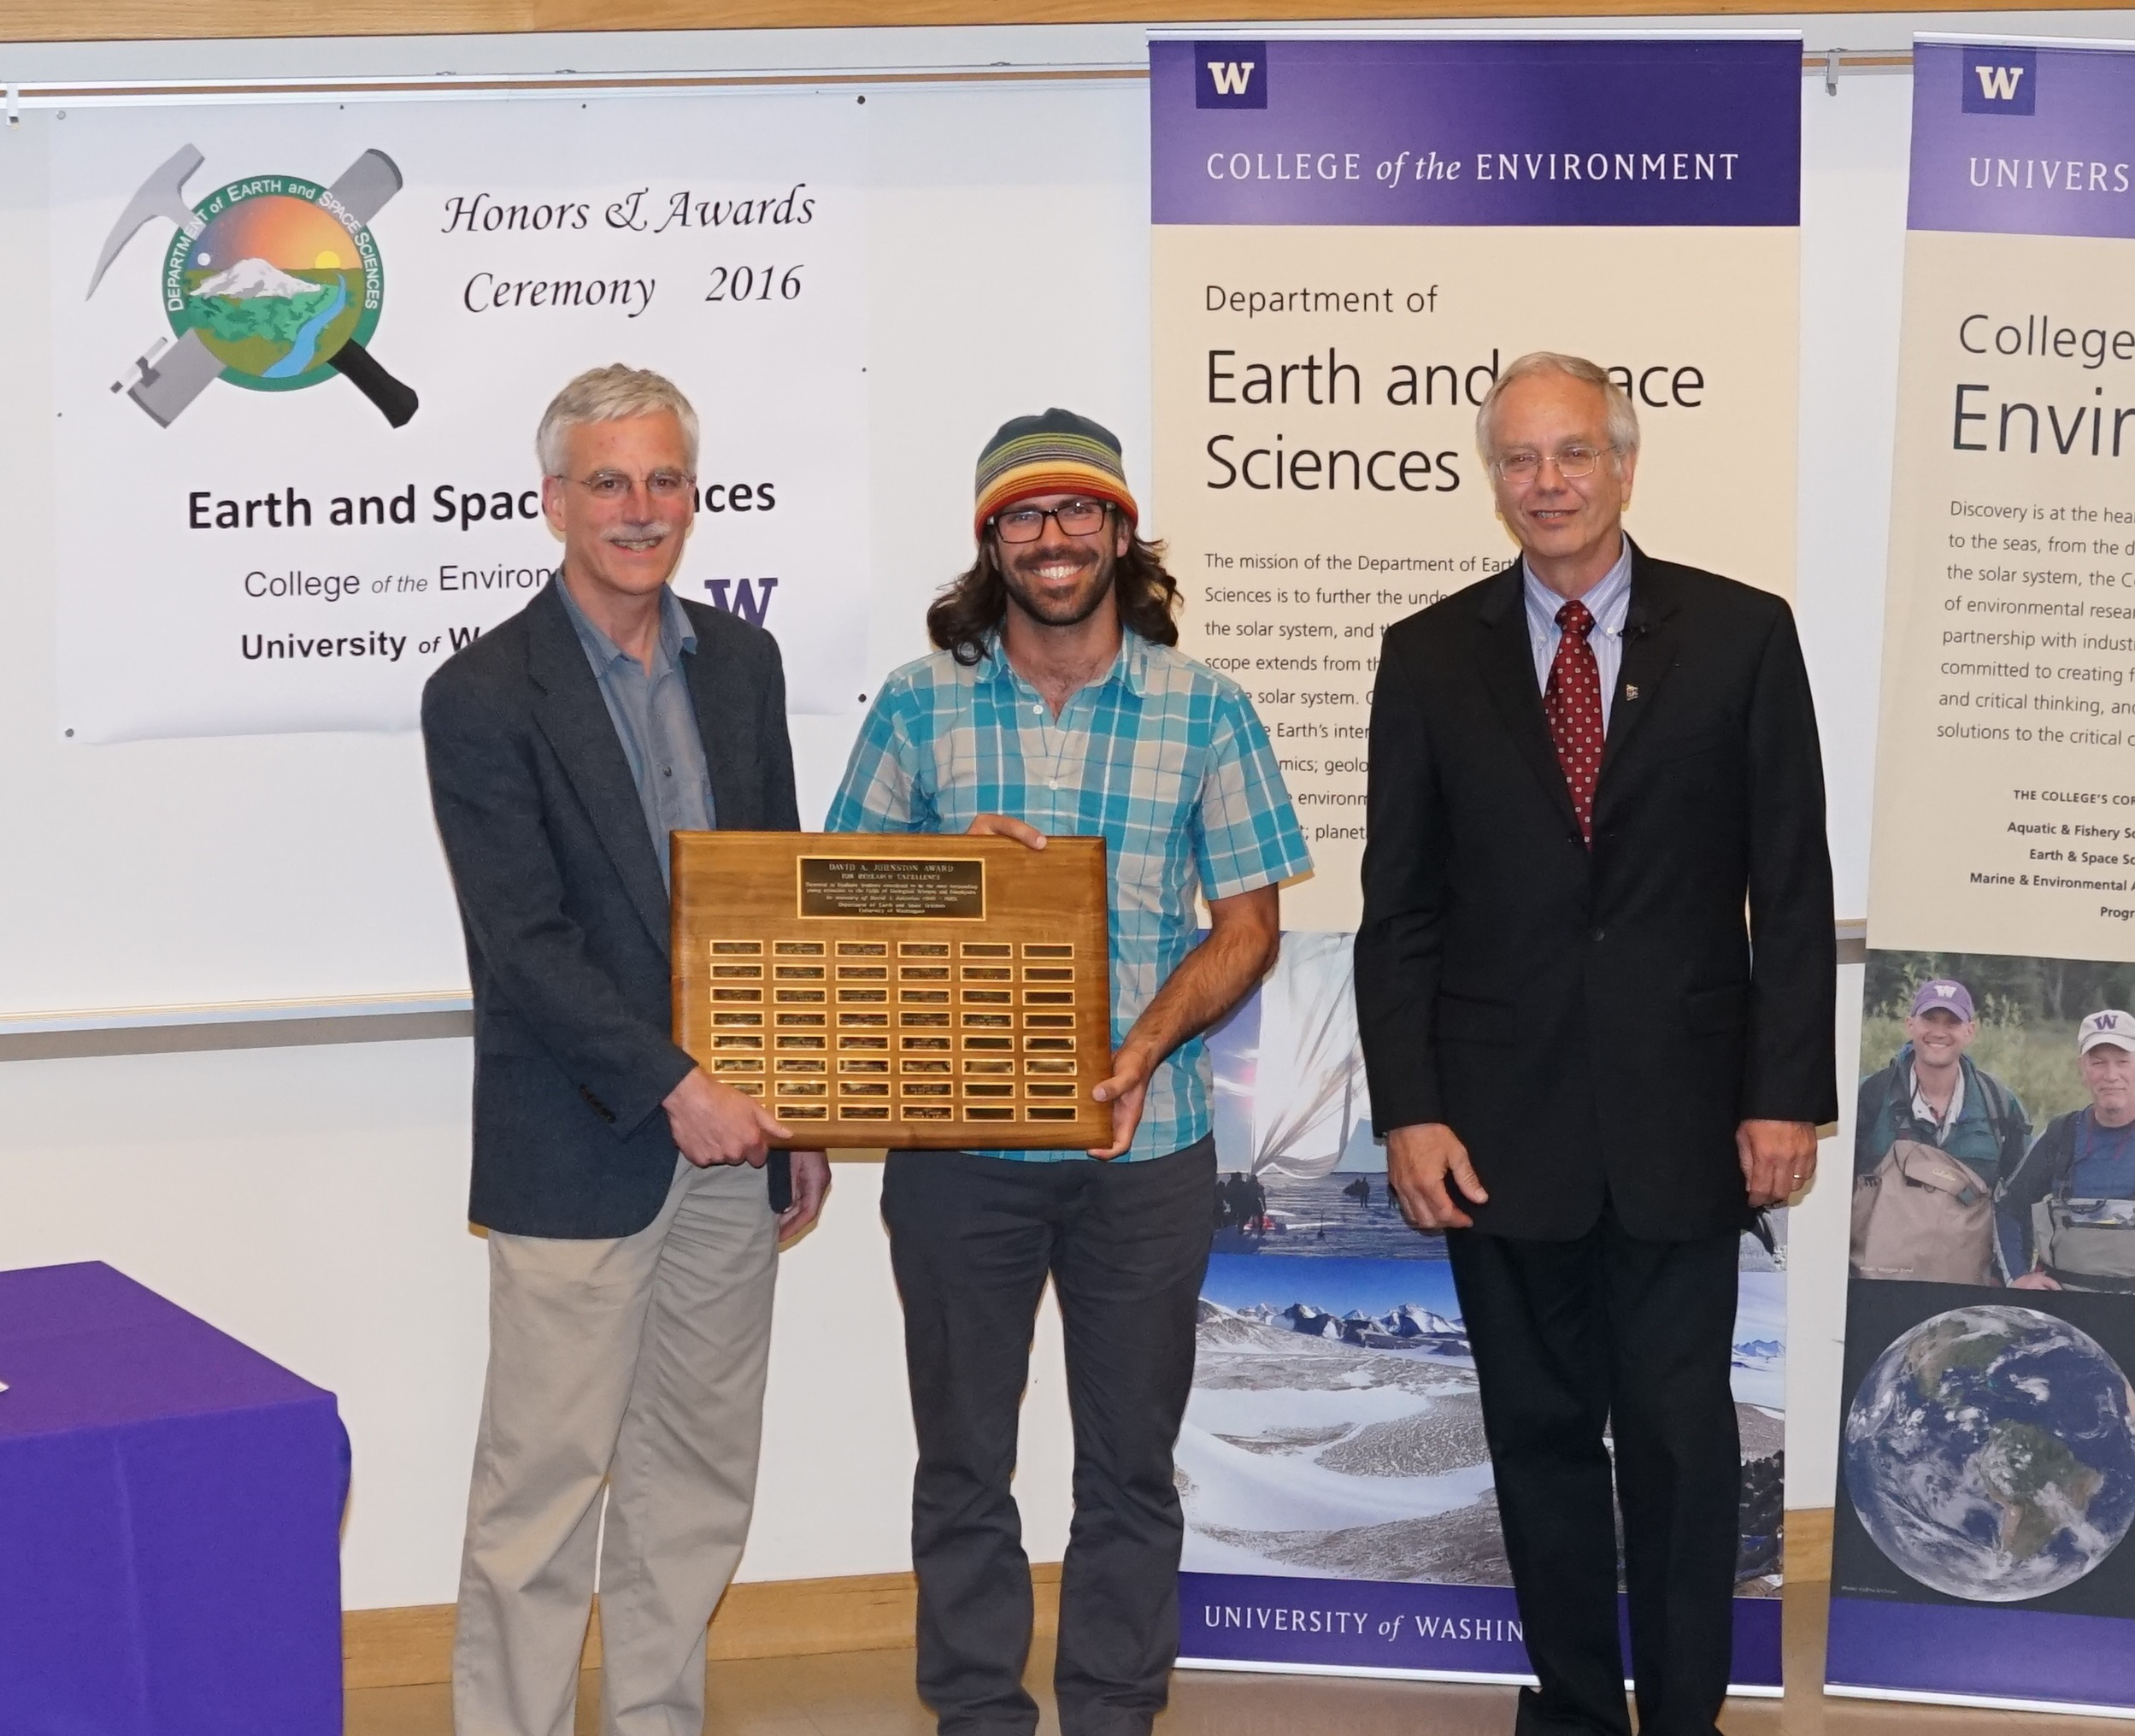 Photo of Bradley Markle receiving the Johnston Prize for Research Excellence from Ken Creager and Bruce Nelson.